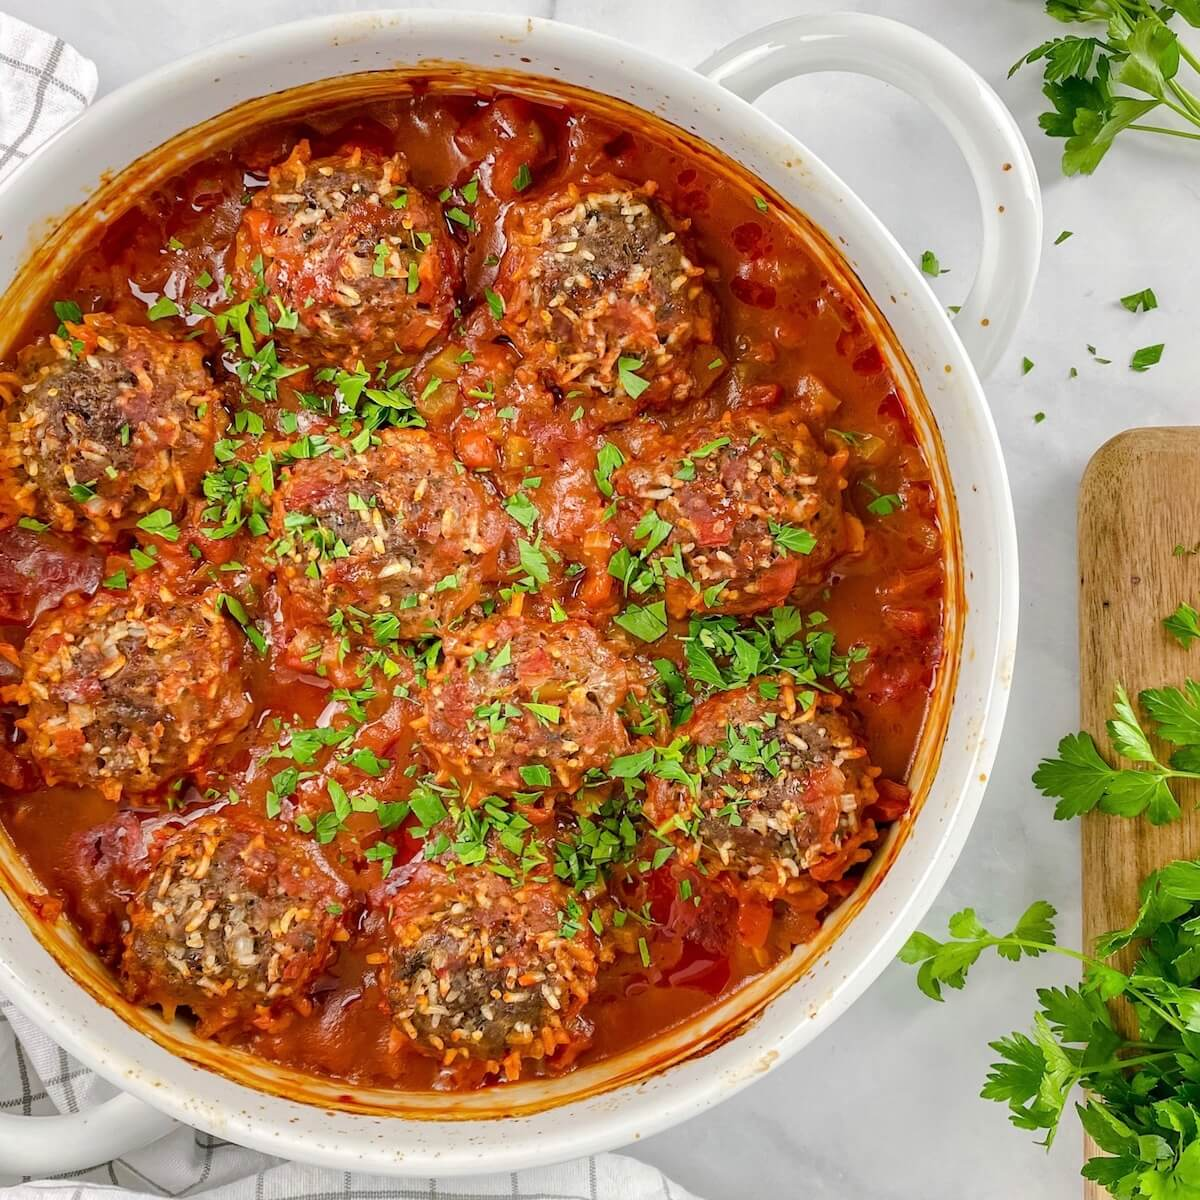 feature image of porcupine balls with rice cooked inside in tomato sauce